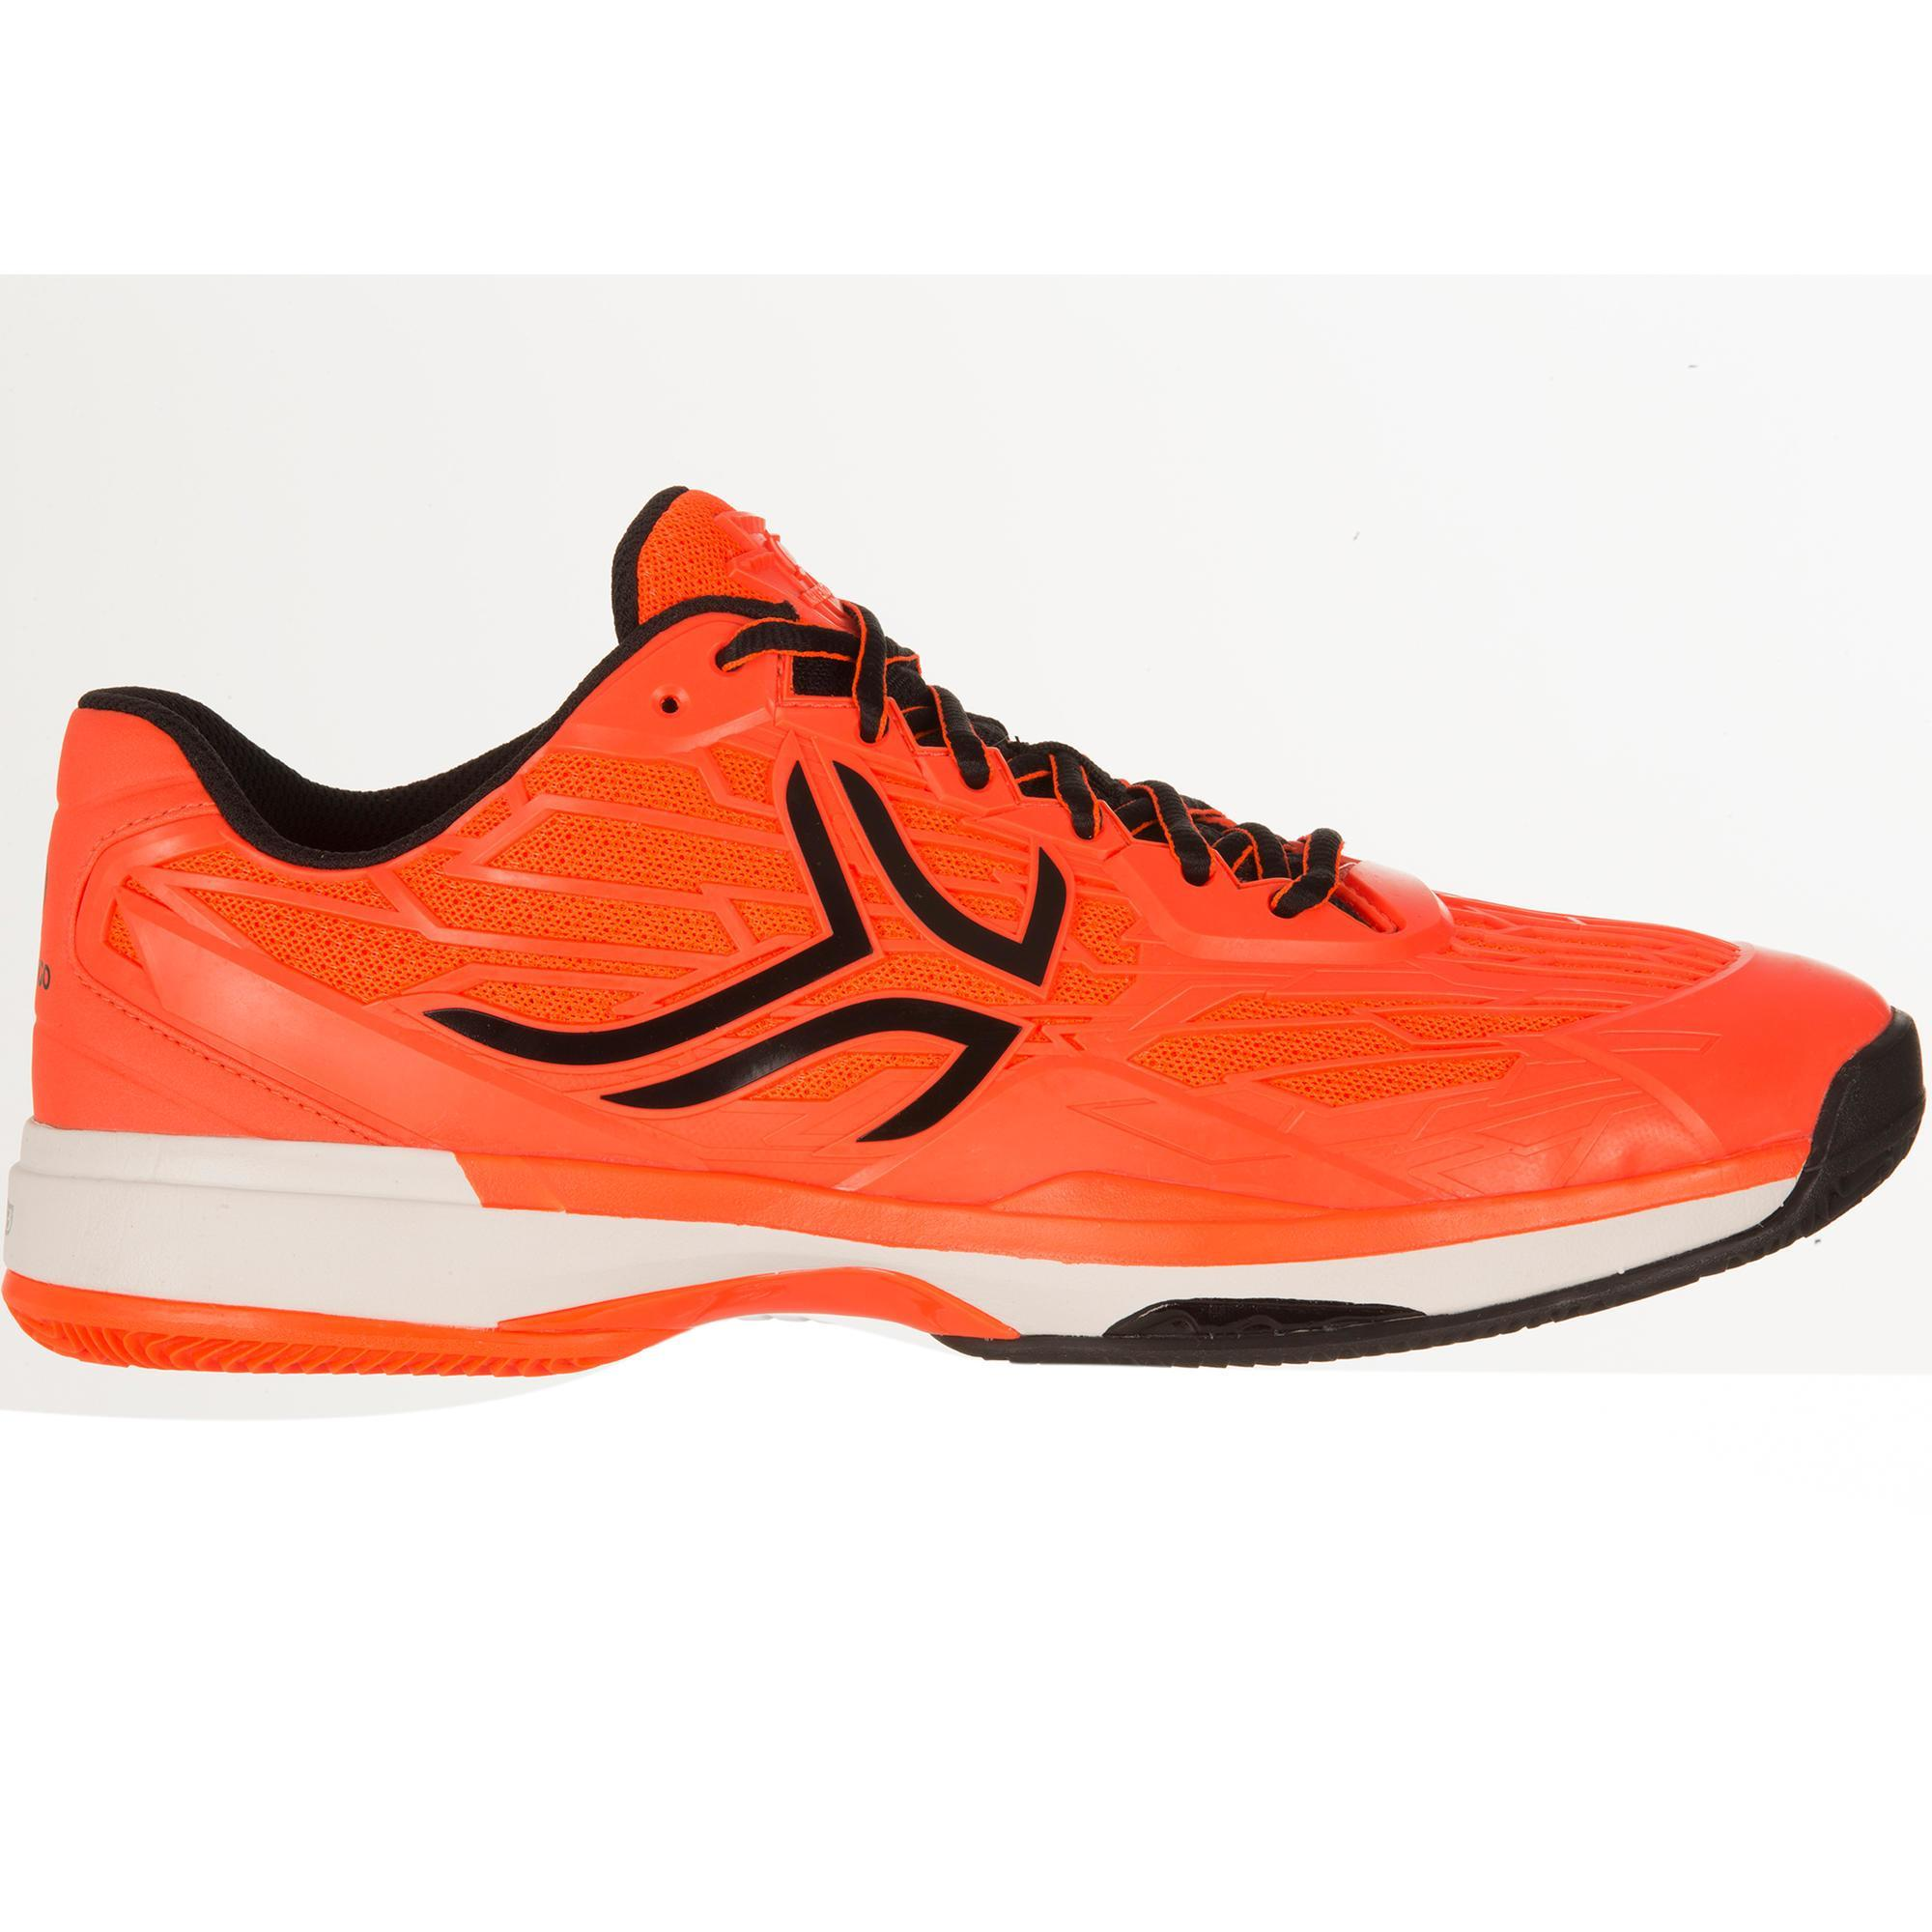 chaussures de tennis homme artengo ts990 terre battue orange fluo artengo. Black Bedroom Furniture Sets. Home Design Ideas